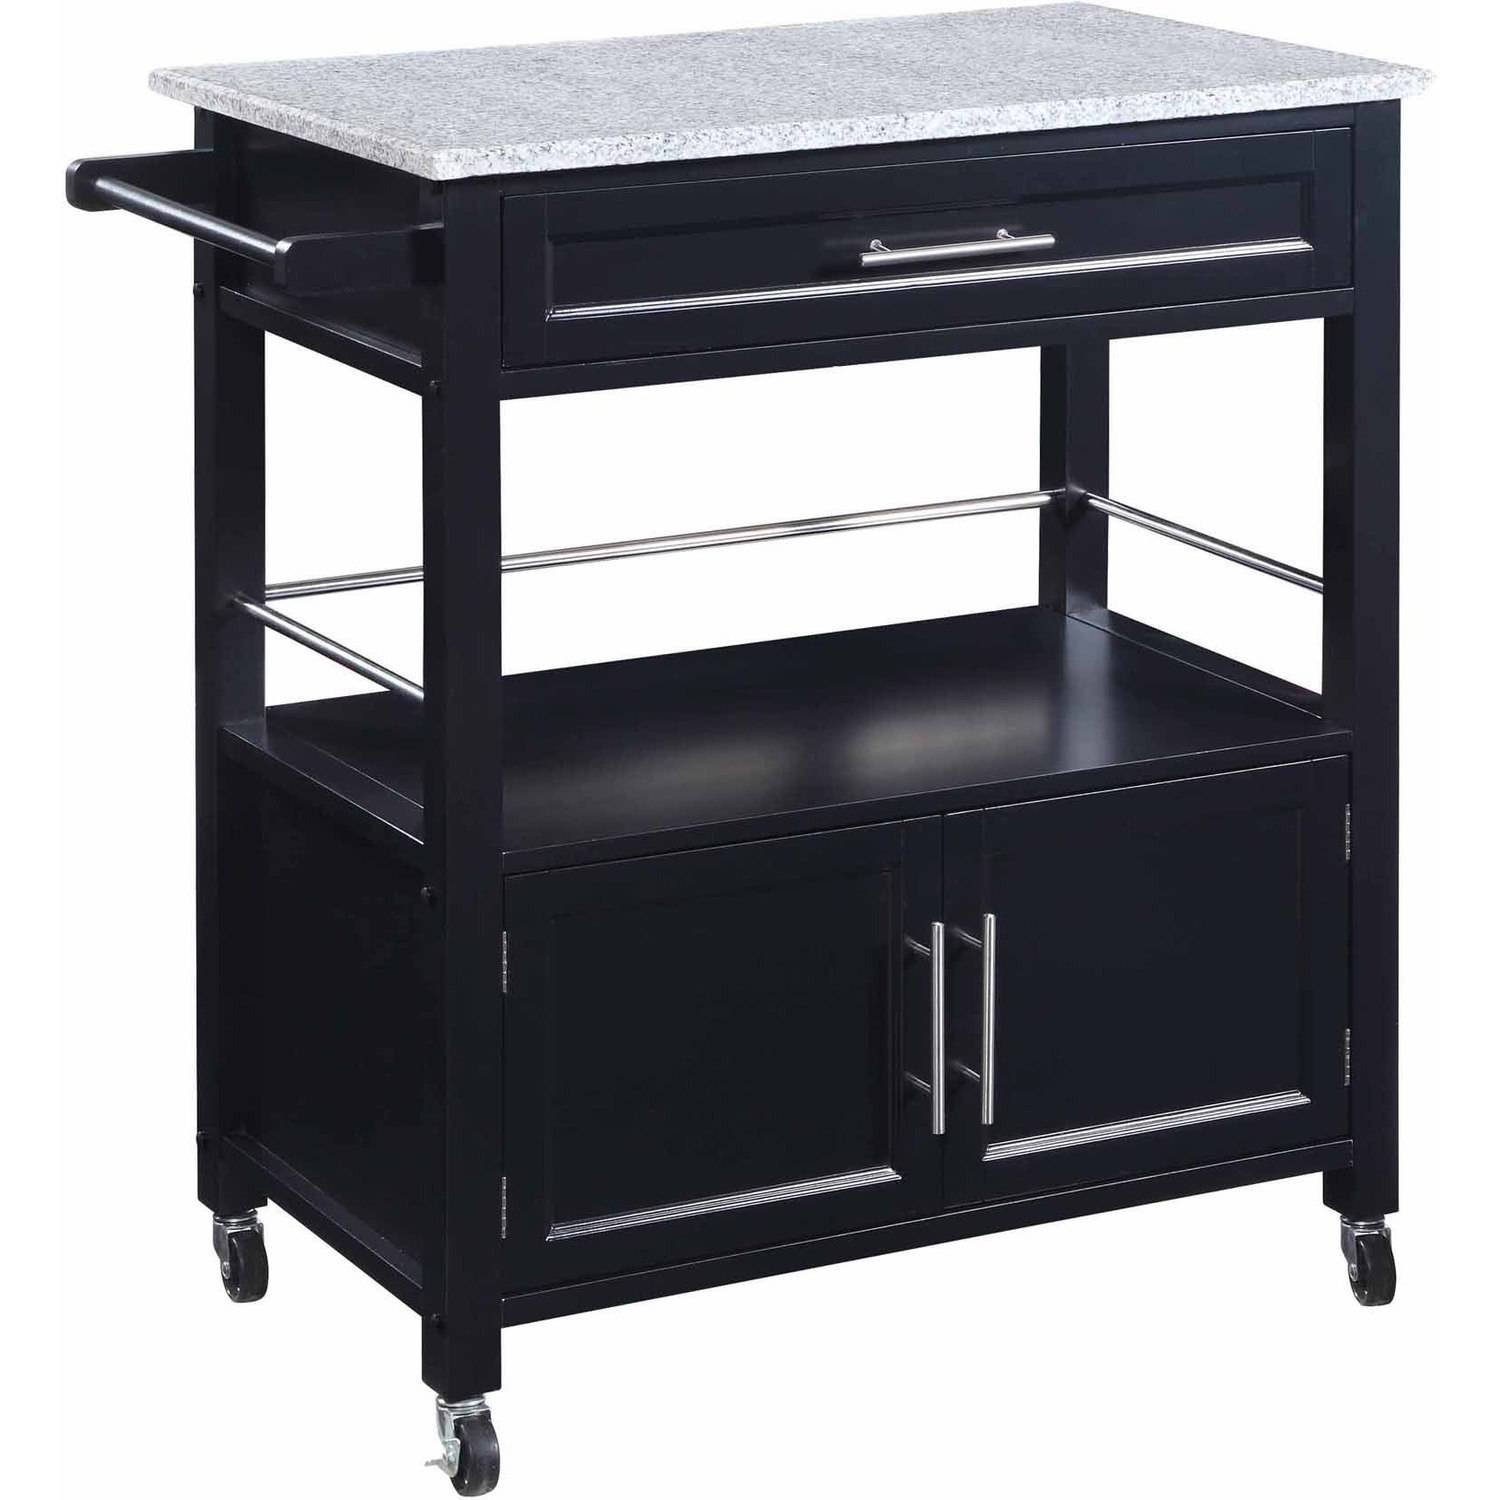 Cameron Kitchen Cart with Granite Top, Black Finish